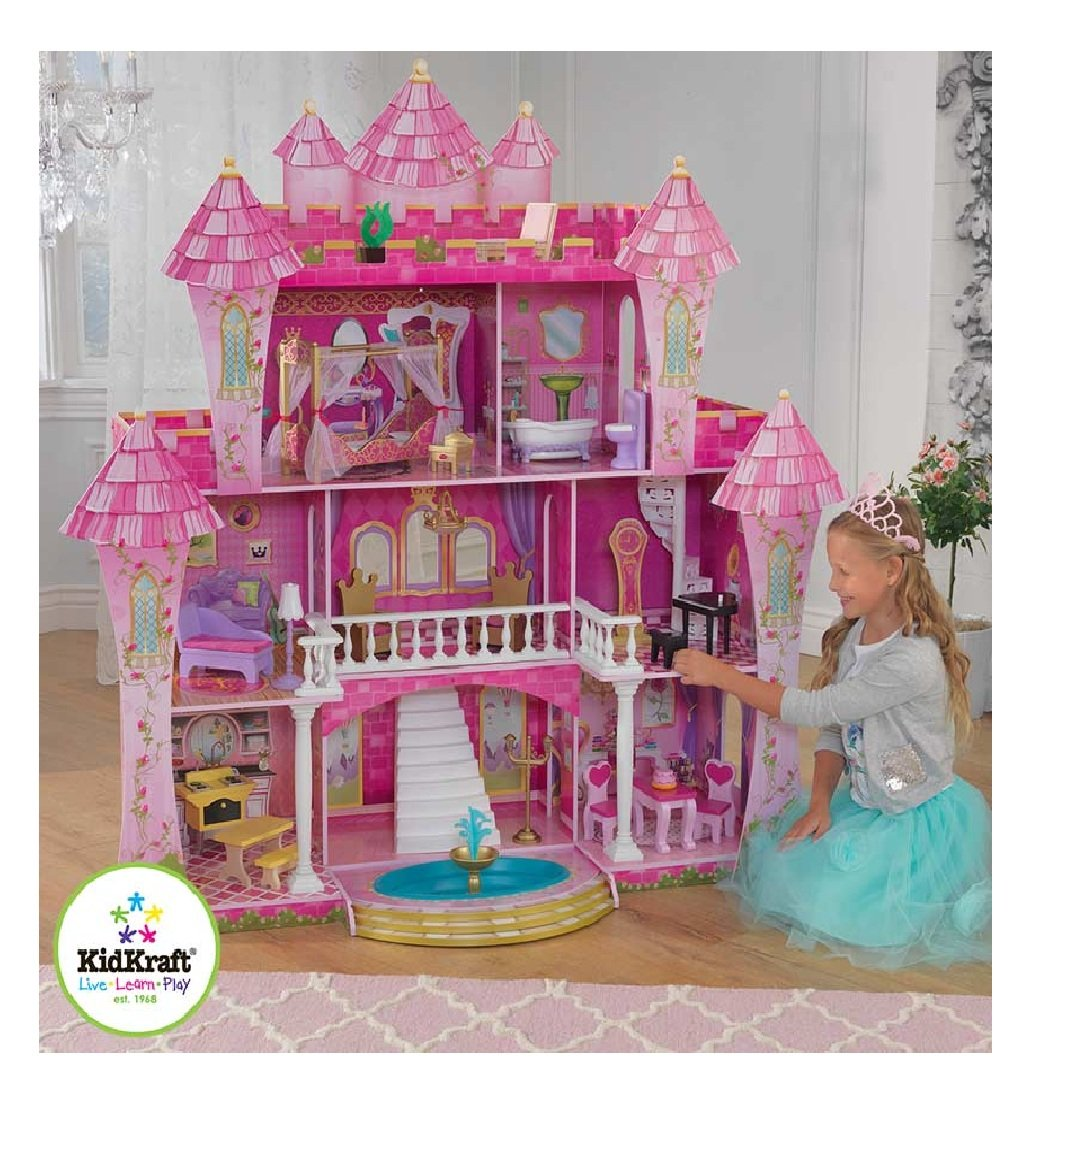 Dolls house at argos co uk your online shop for dolls houses dolls - Kidkraft Far Far Away Wooden Dollhouse 21 Pieces Of Furniture 3 Years Amazon Co Uk Toys Games